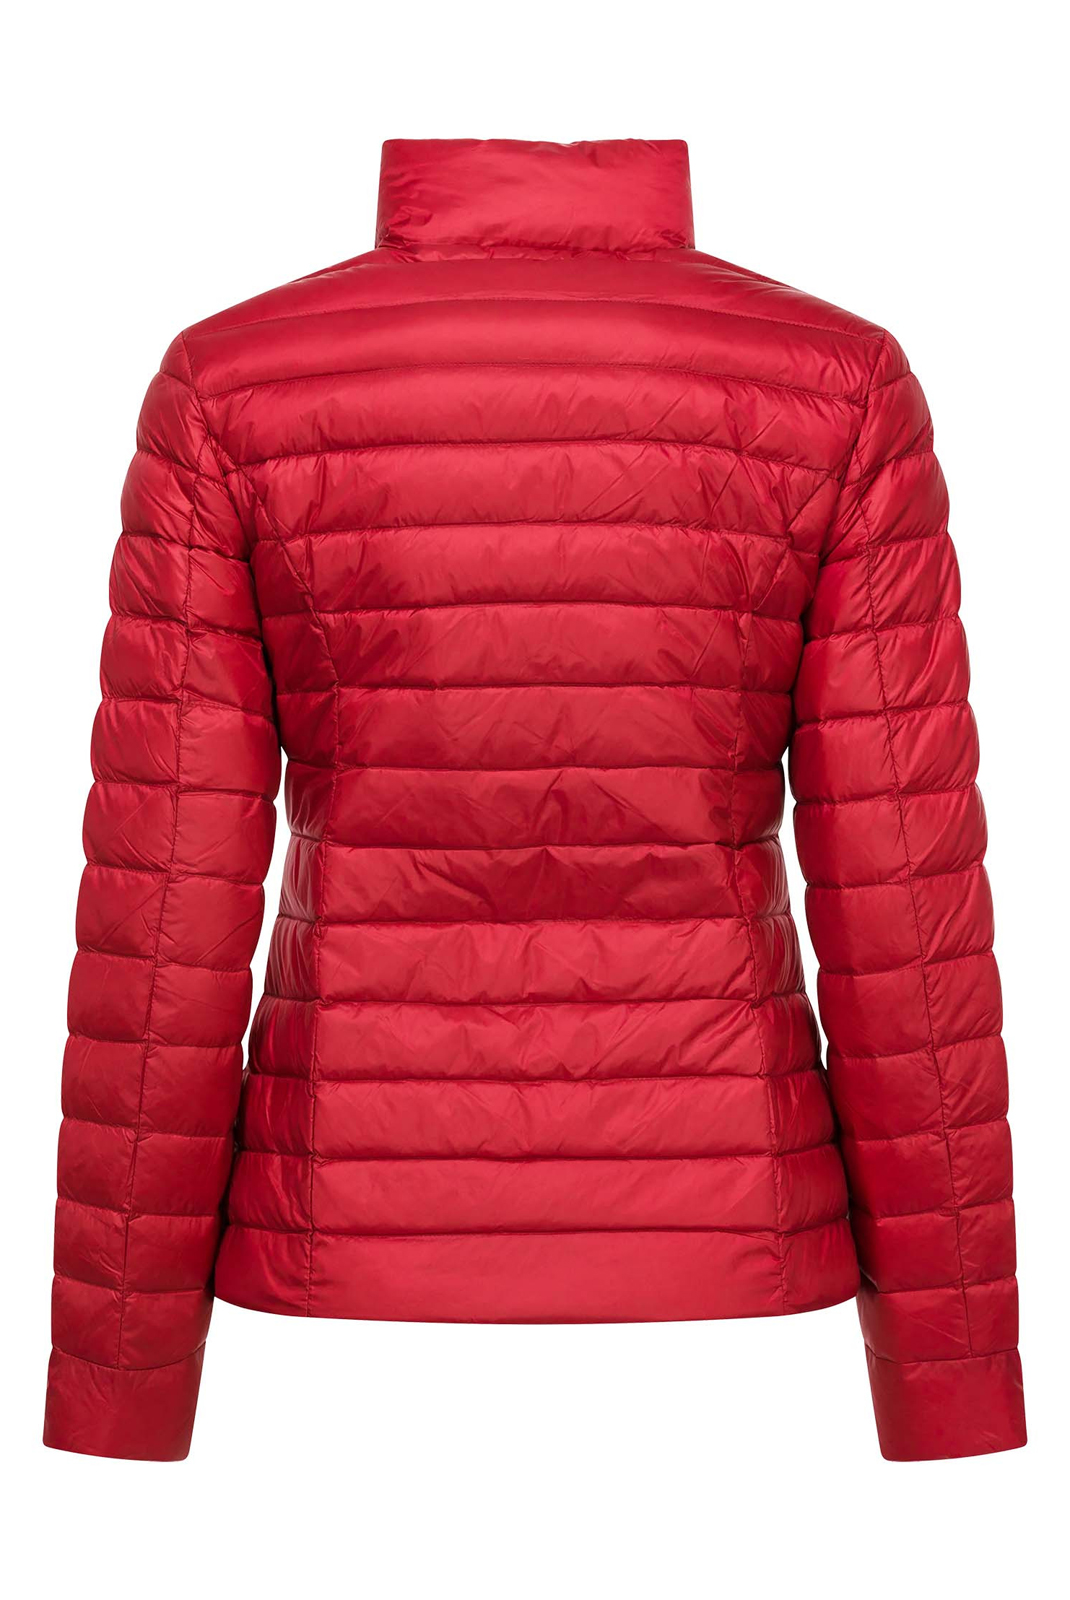 Blouson / doudoune  Just over the top CHA 300 RED